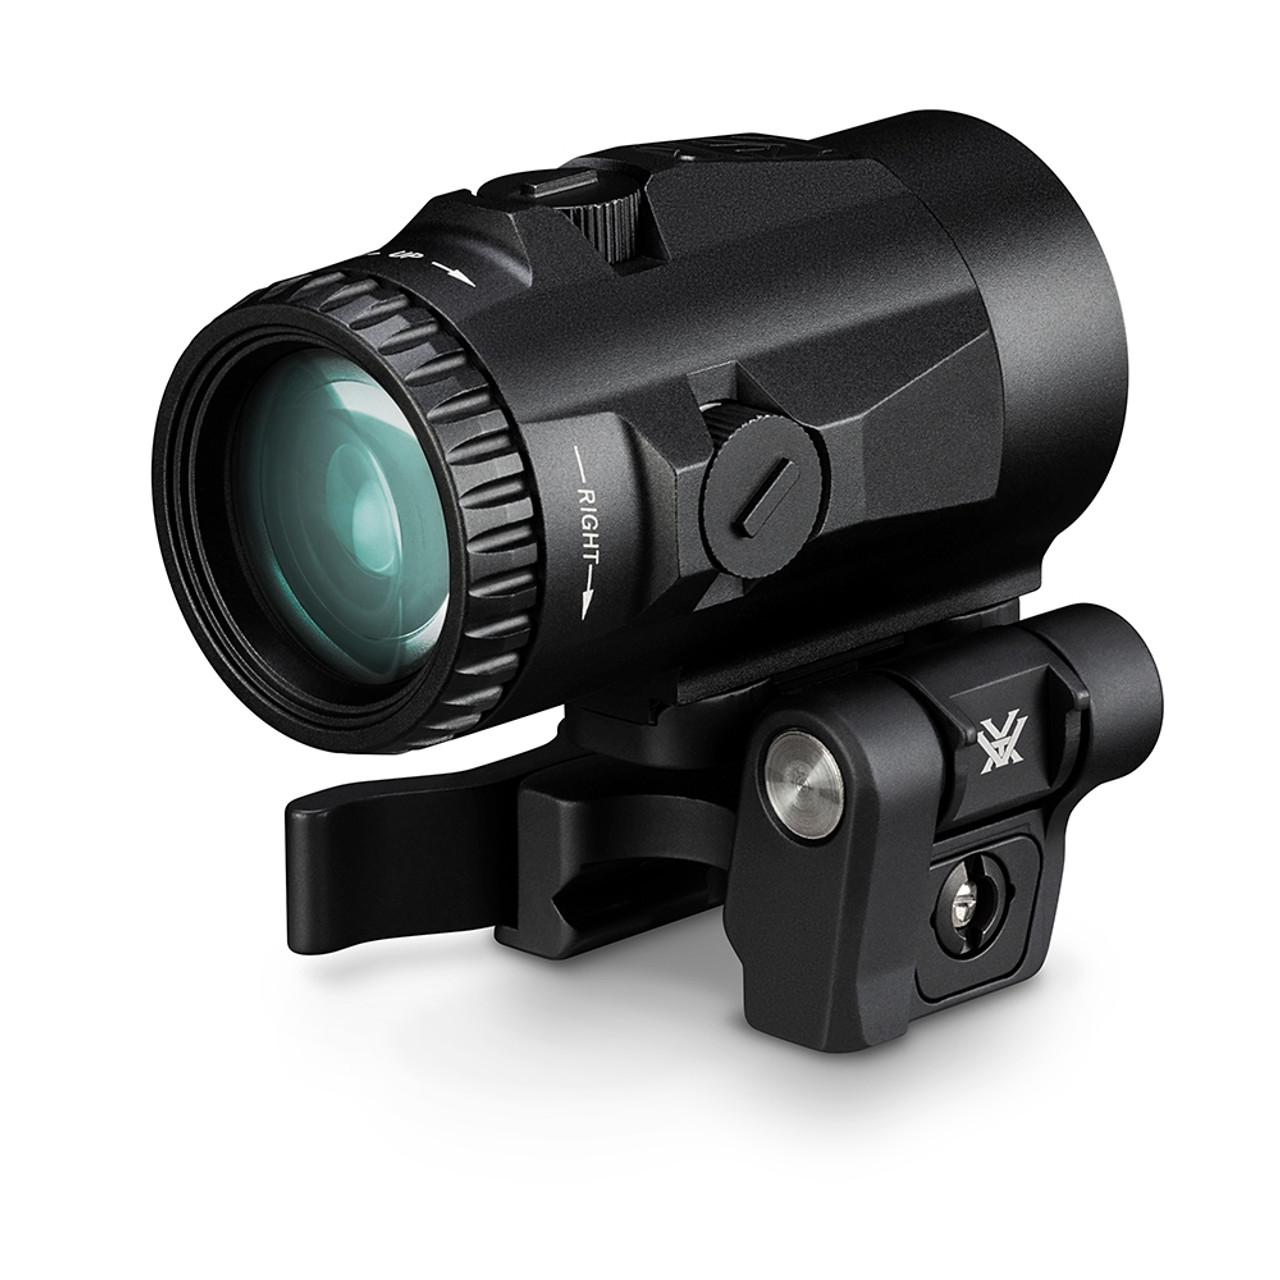 Vortex Micro 3x Magnifier with Quick-Release Flip Mount